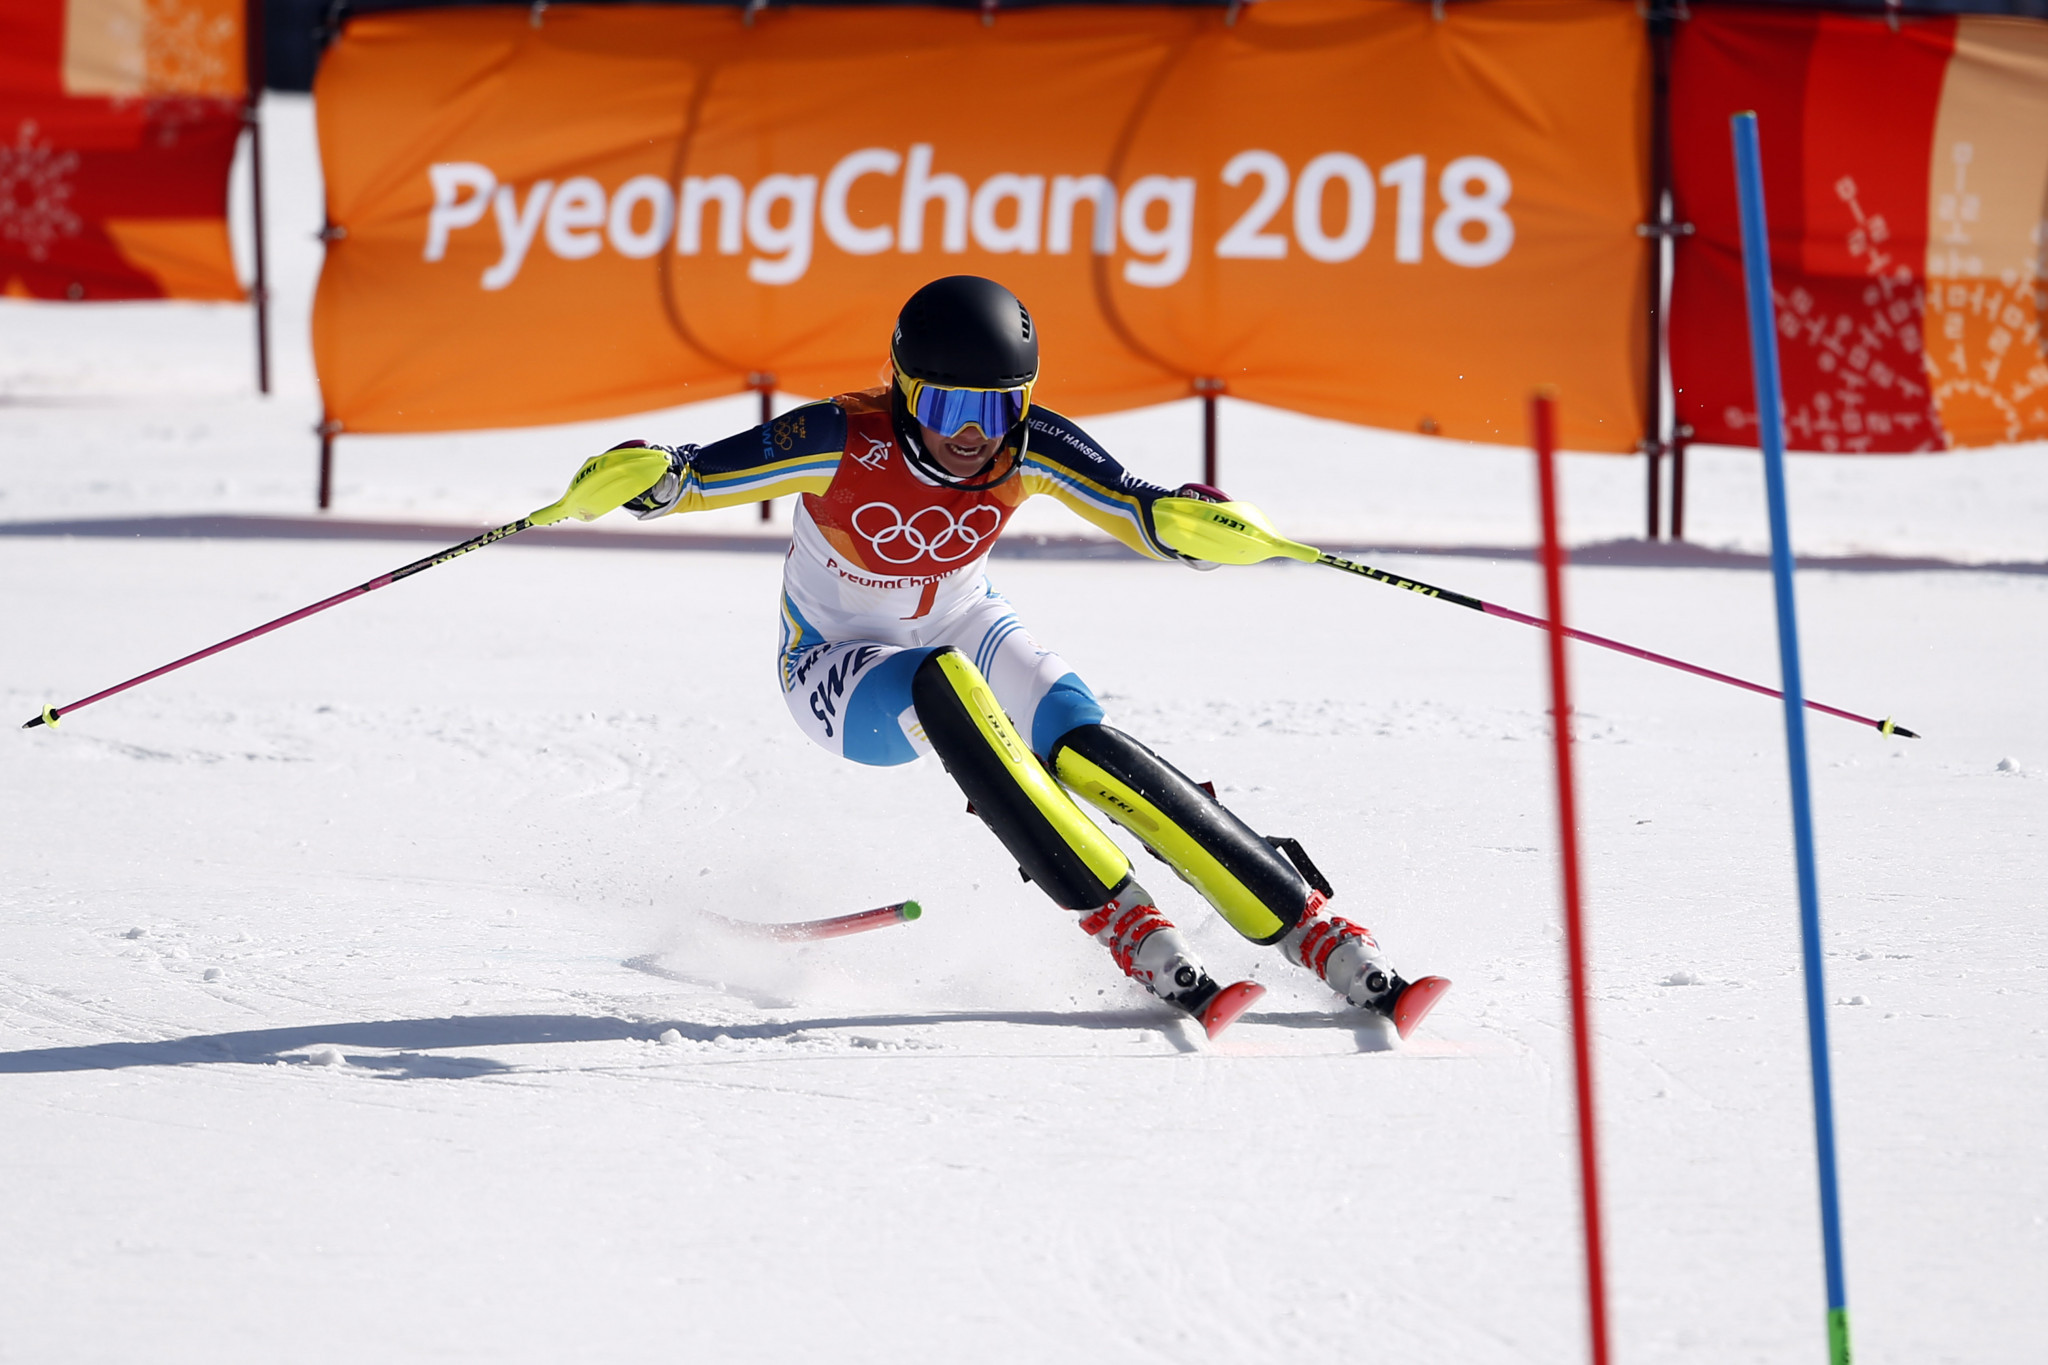 Hansdotter chooses perfect moment for first major gold medal with victory in women's slalom at Pyeongchang 2018